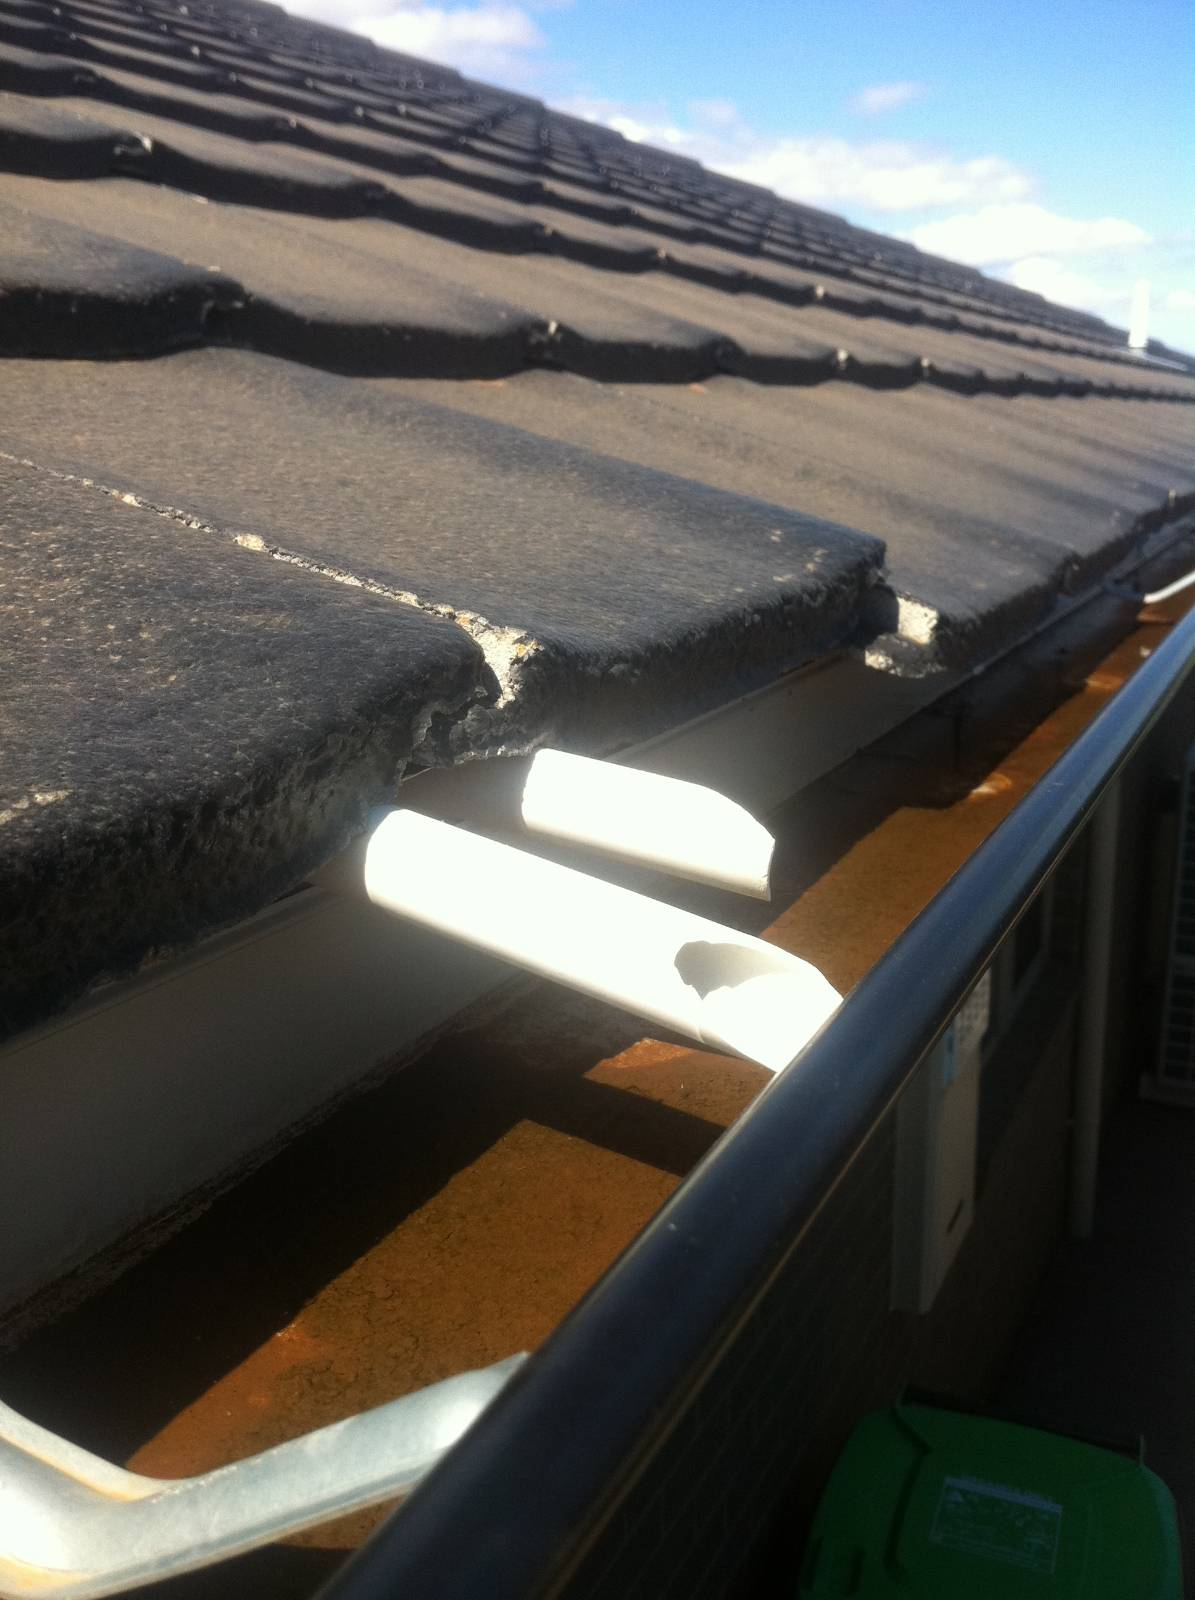 Pipe sticking out underneath roof tile into guttering?